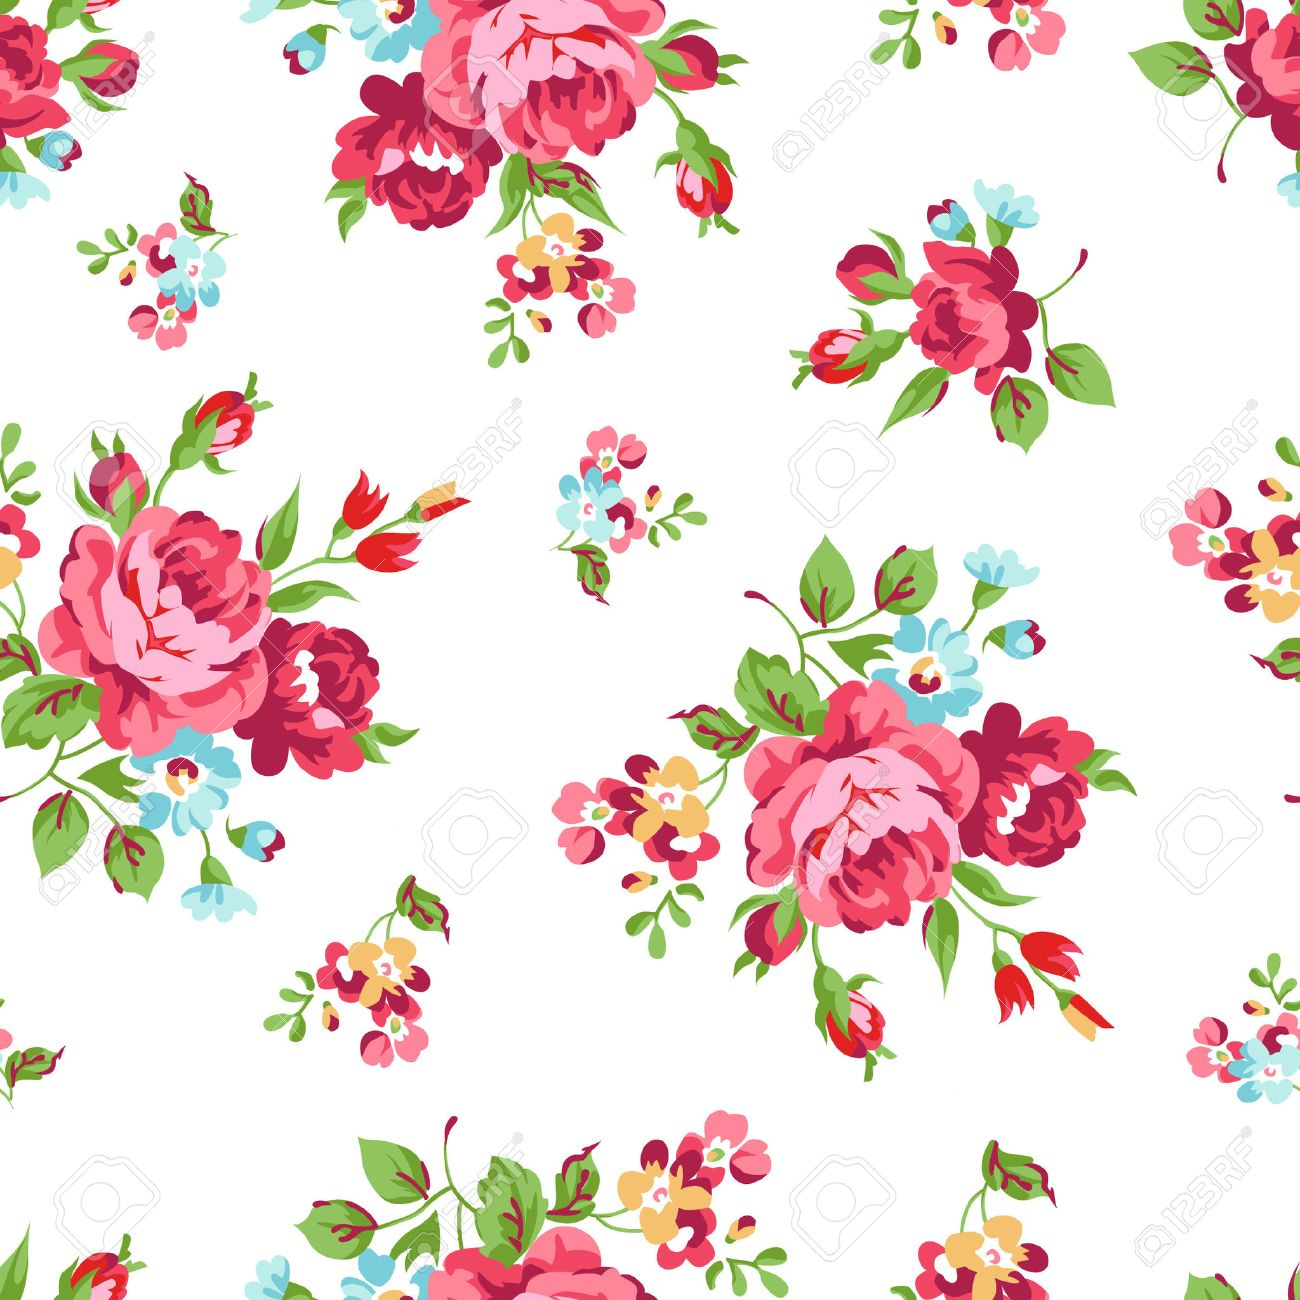 8895aa5519a3 Seamless floral pattern with red rose Stock Vector - 49441669